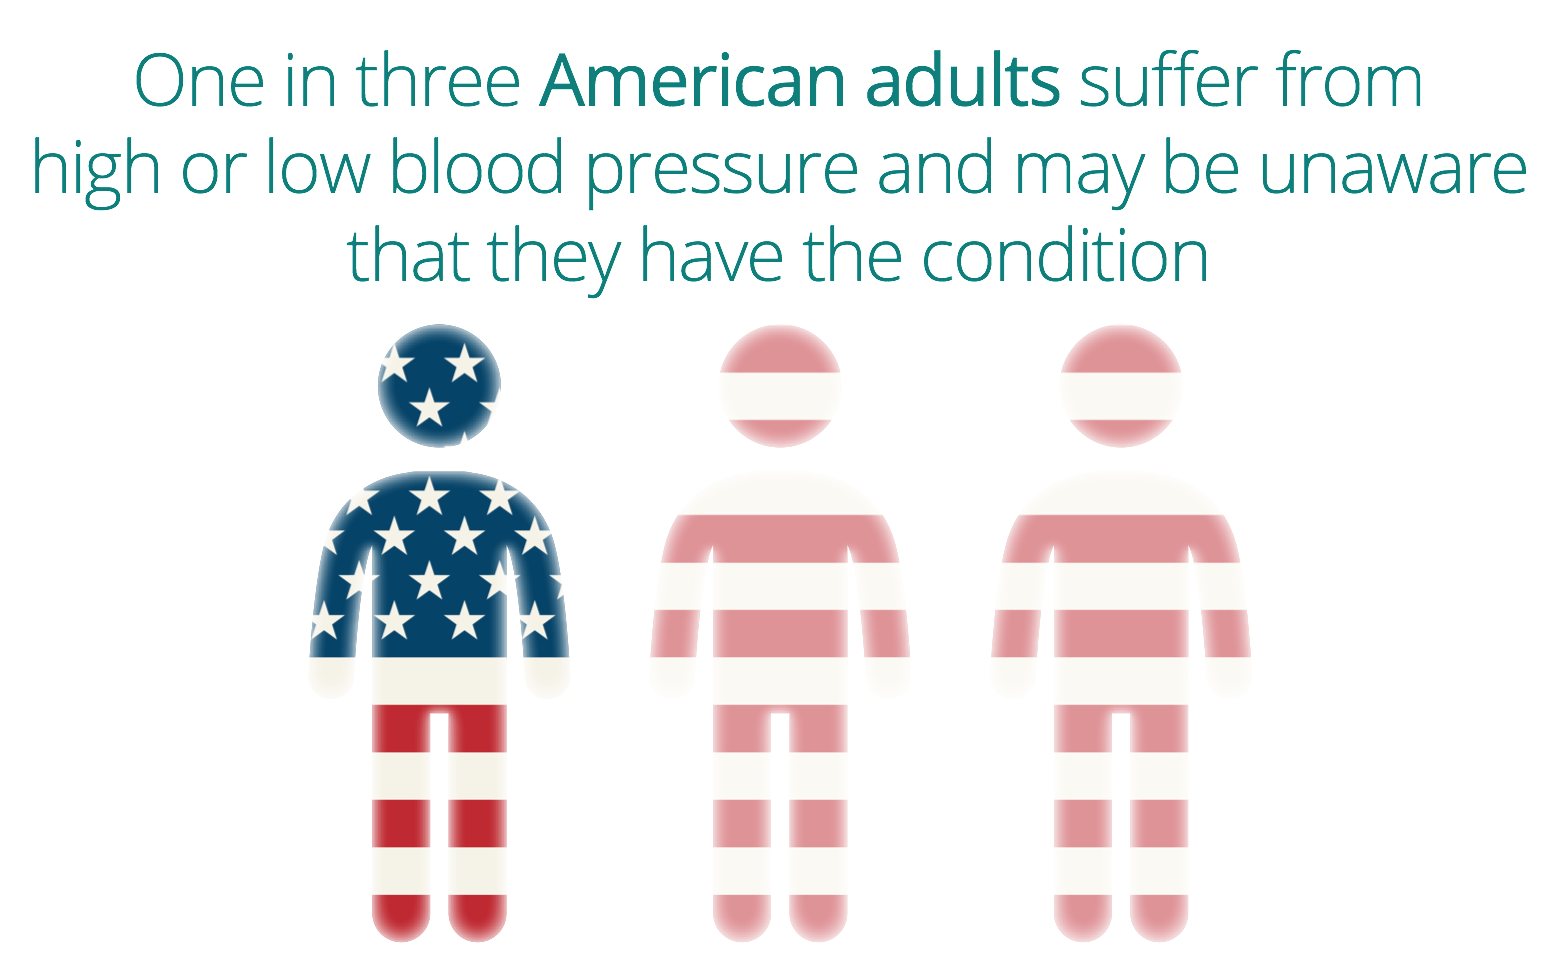 One in three Americans suffer from high blood pressure